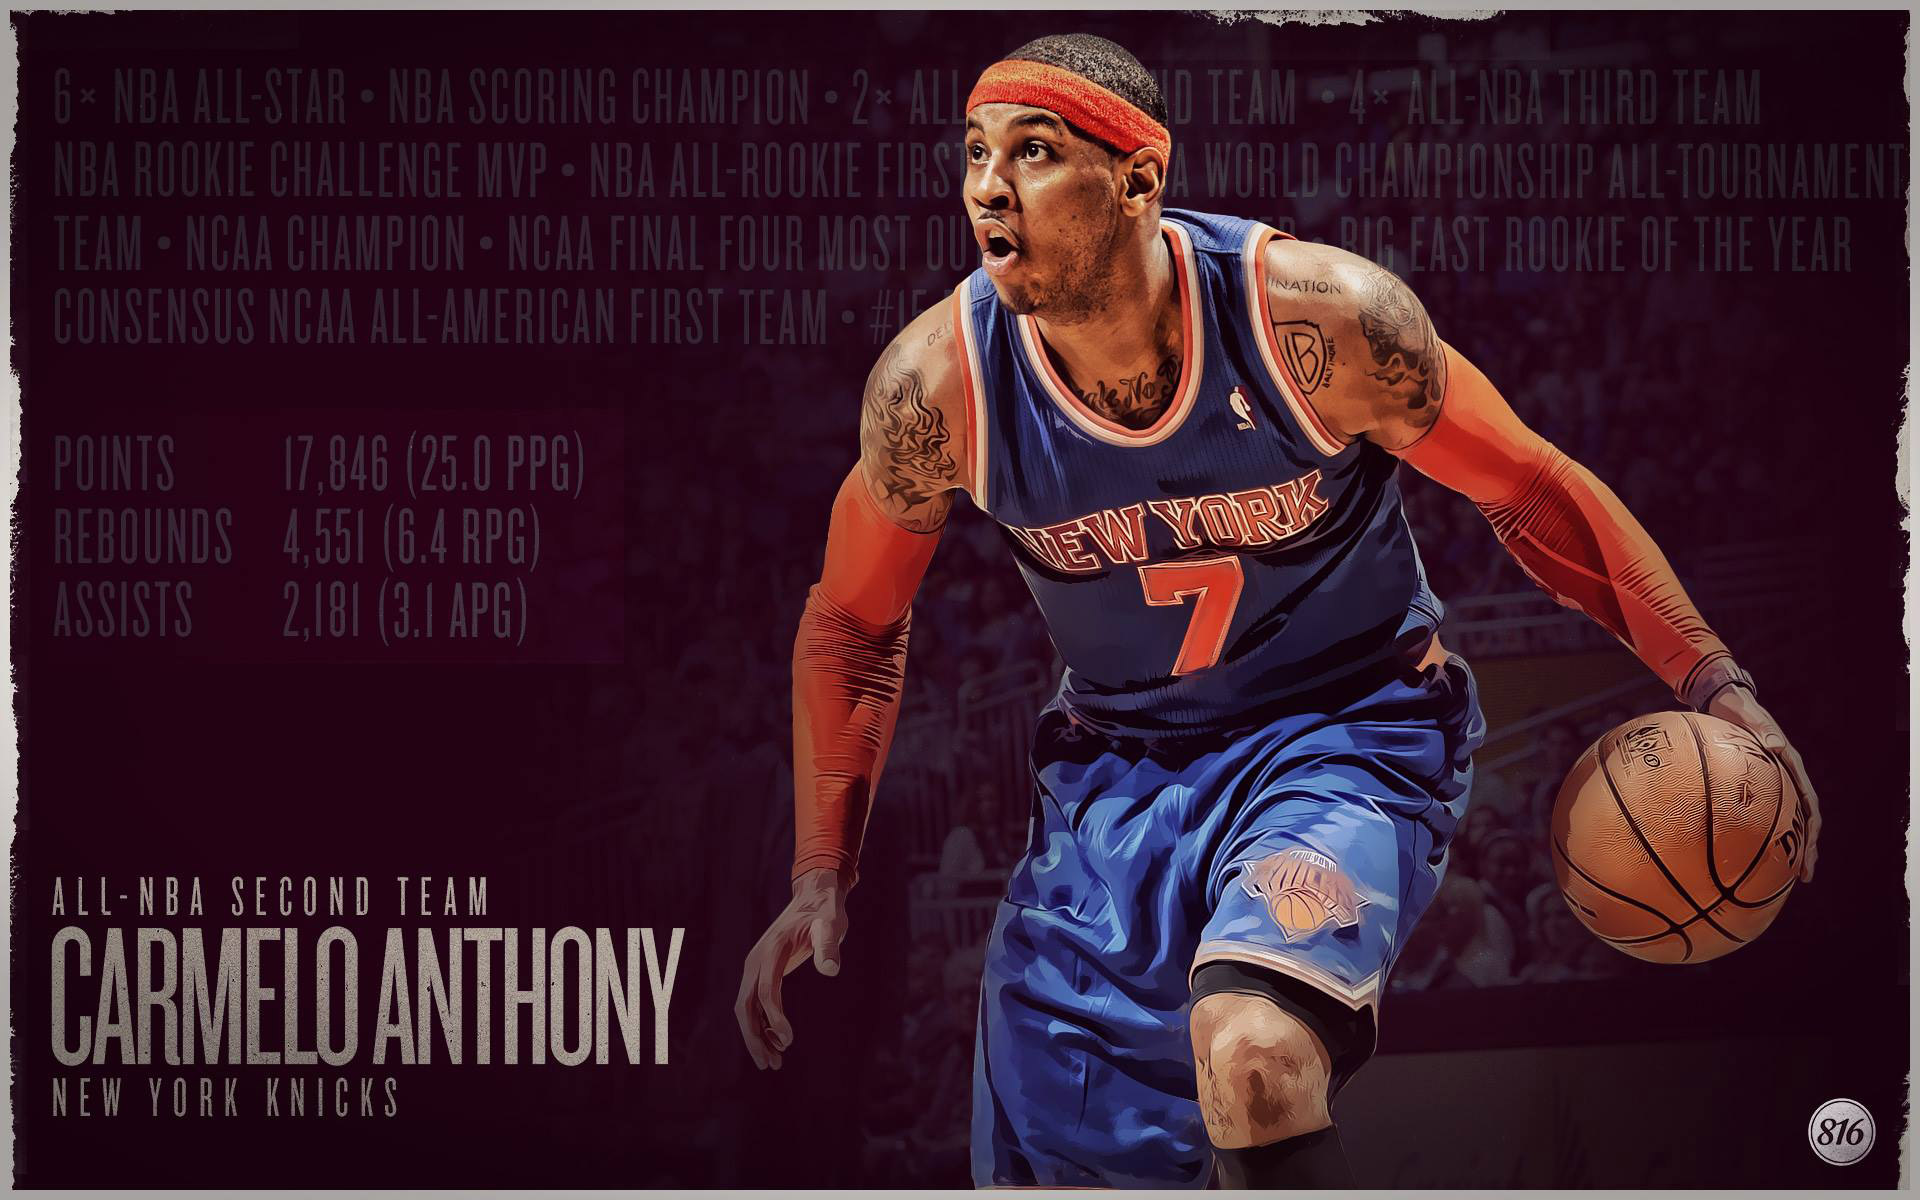 Carmelo anthony wallpapers basketball wallpapers at carmelo anthony 2013 all nba second team 1920x1200 wallpaper voltagebd Images